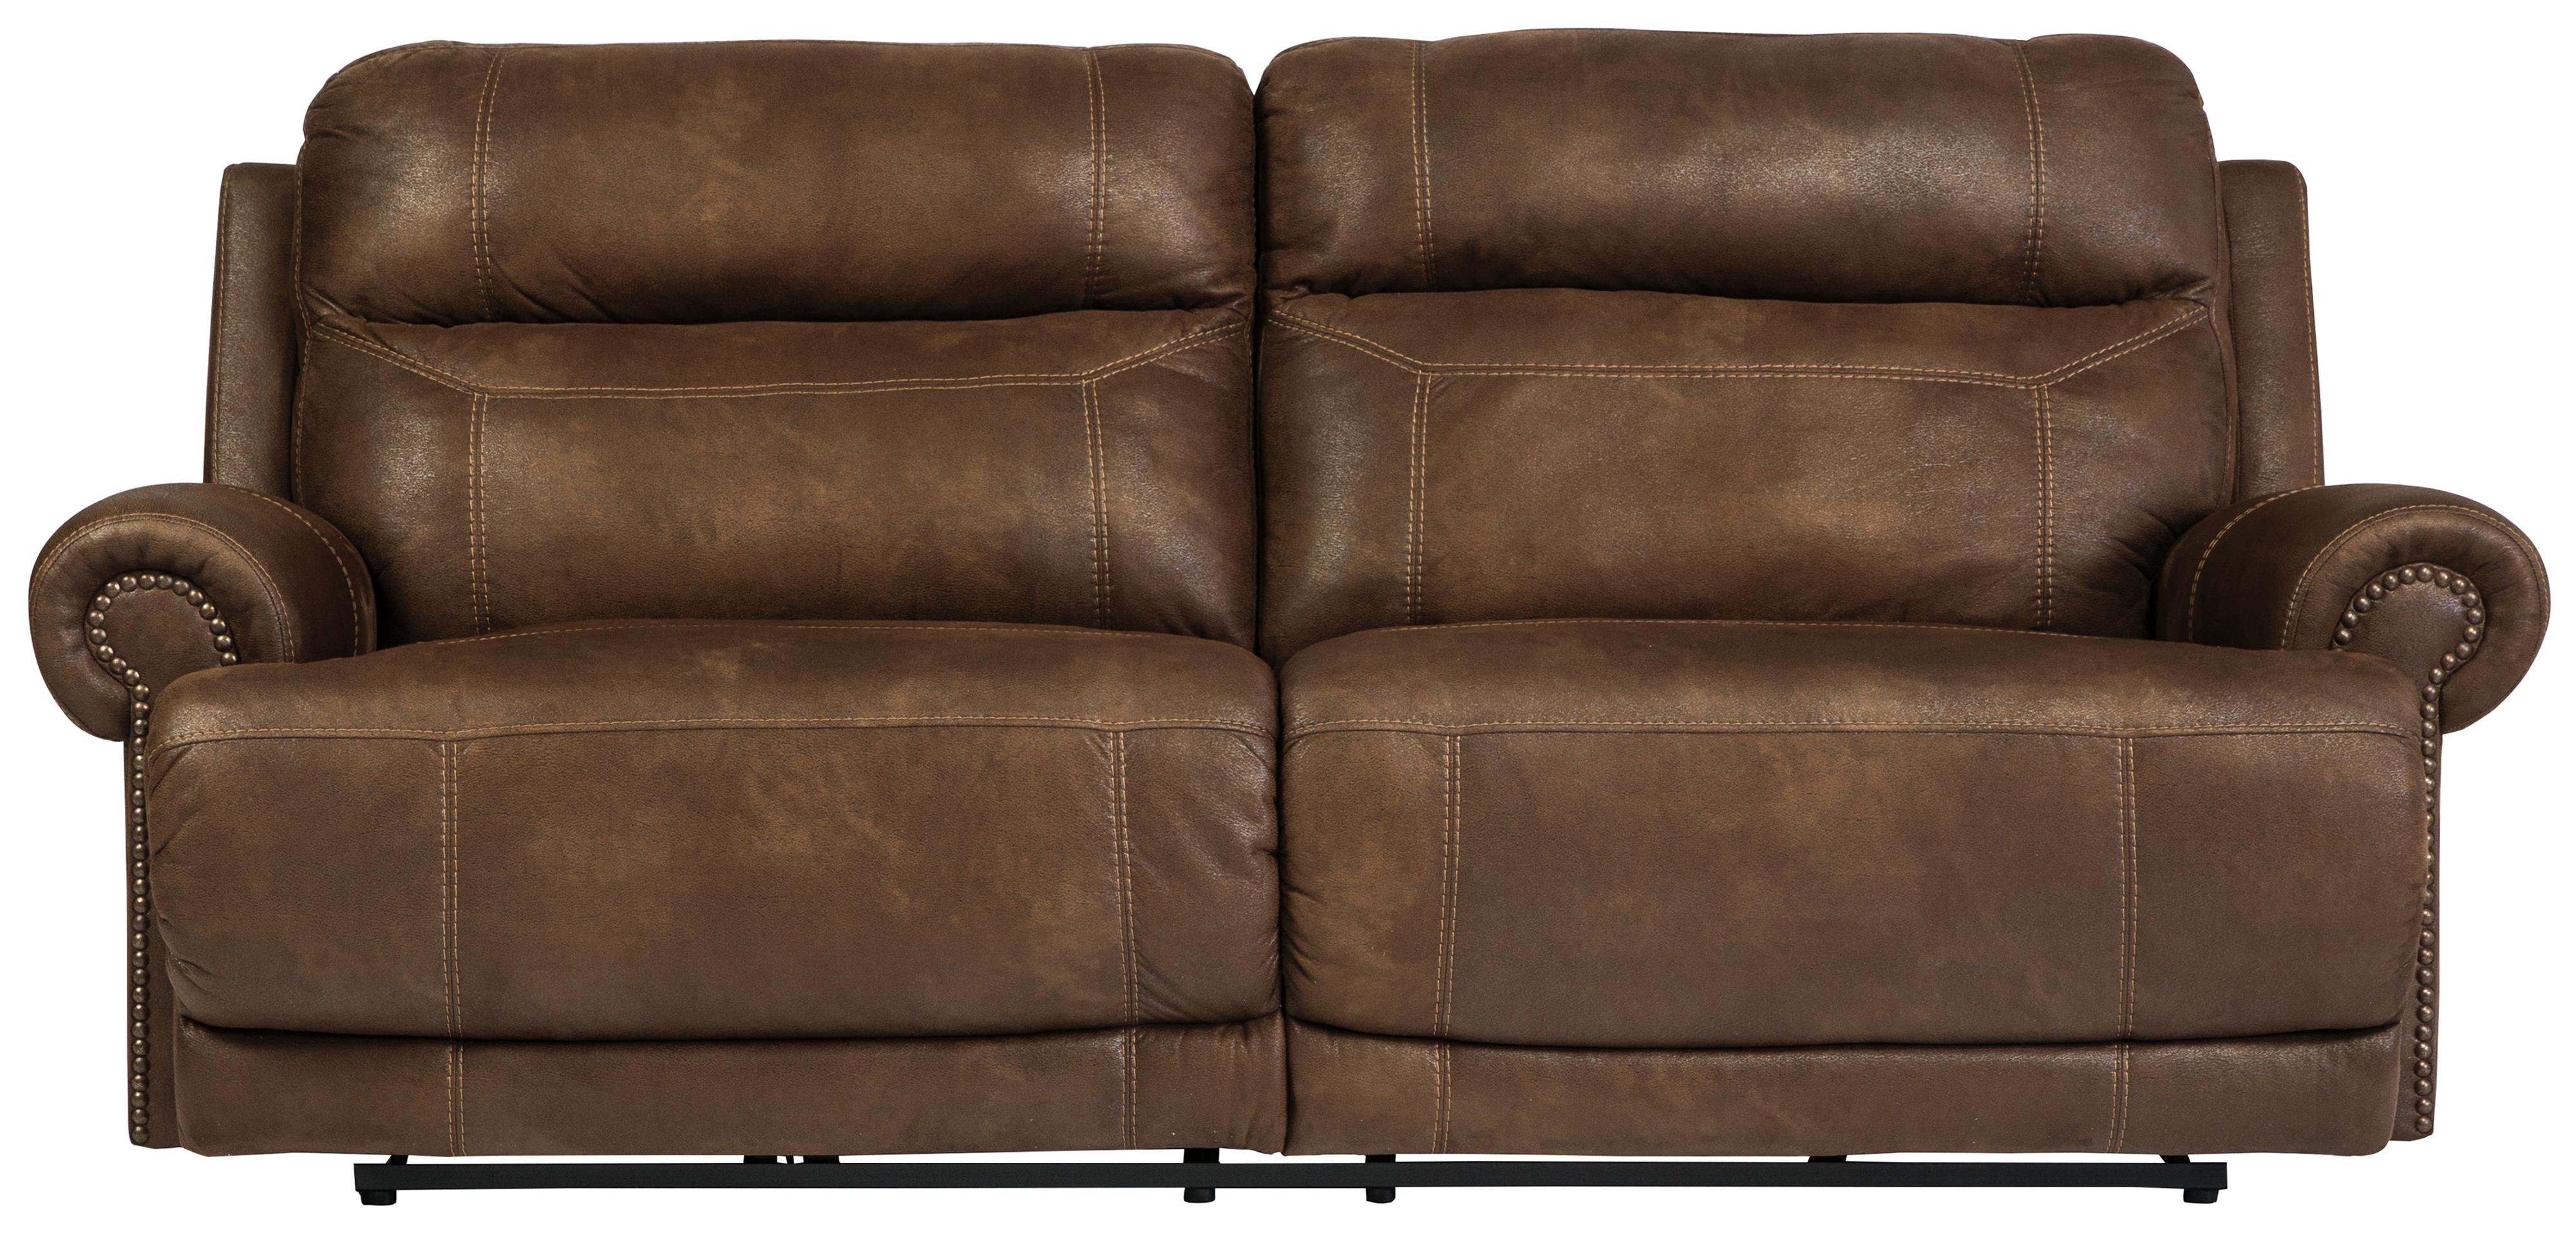 Austere - Brown 2 Seat Reclining Power Sofa by Signature Design by Ashley at Lapeer Furniture & Mattress Center